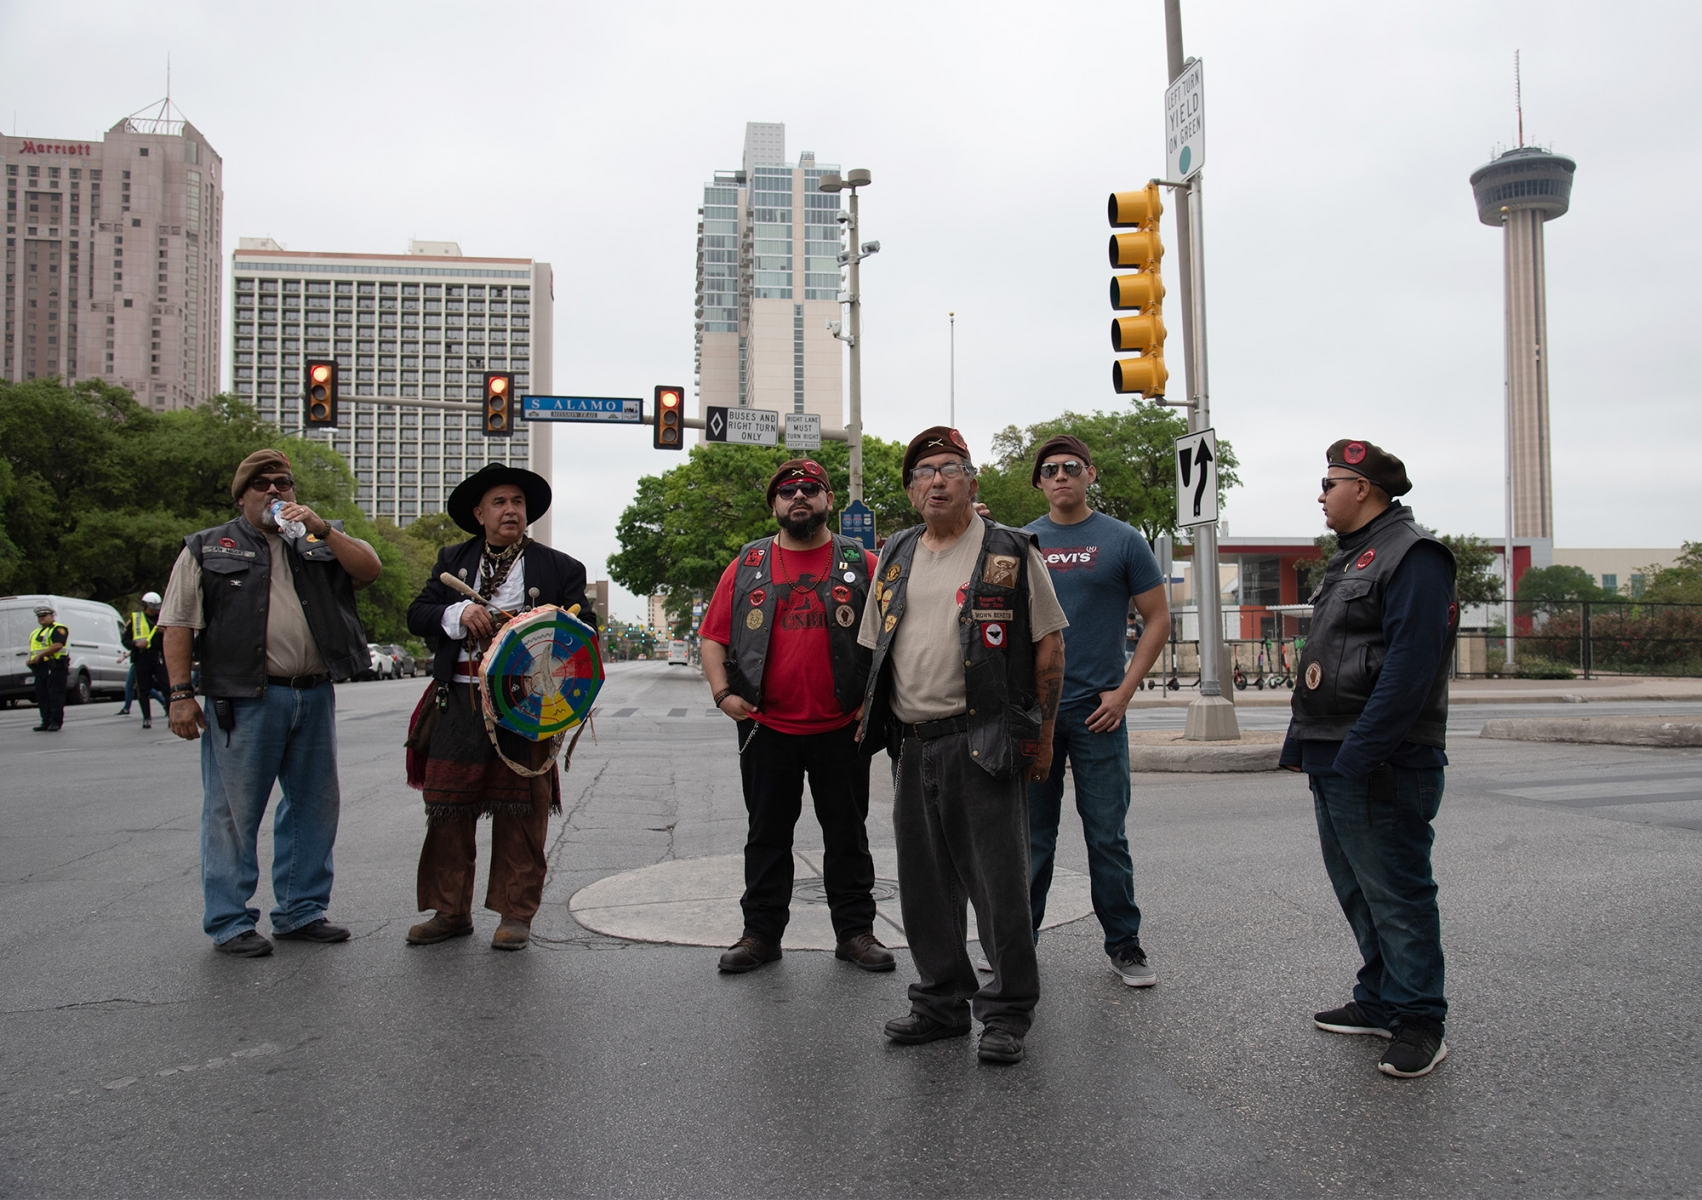 Participants wait for the march to catch up during San Antonio's 23rd annual César E. Chávez March for Justice on Saturday, March 30, on the corner of South Alamo and Market streets. Photo by V. Finster | Heron